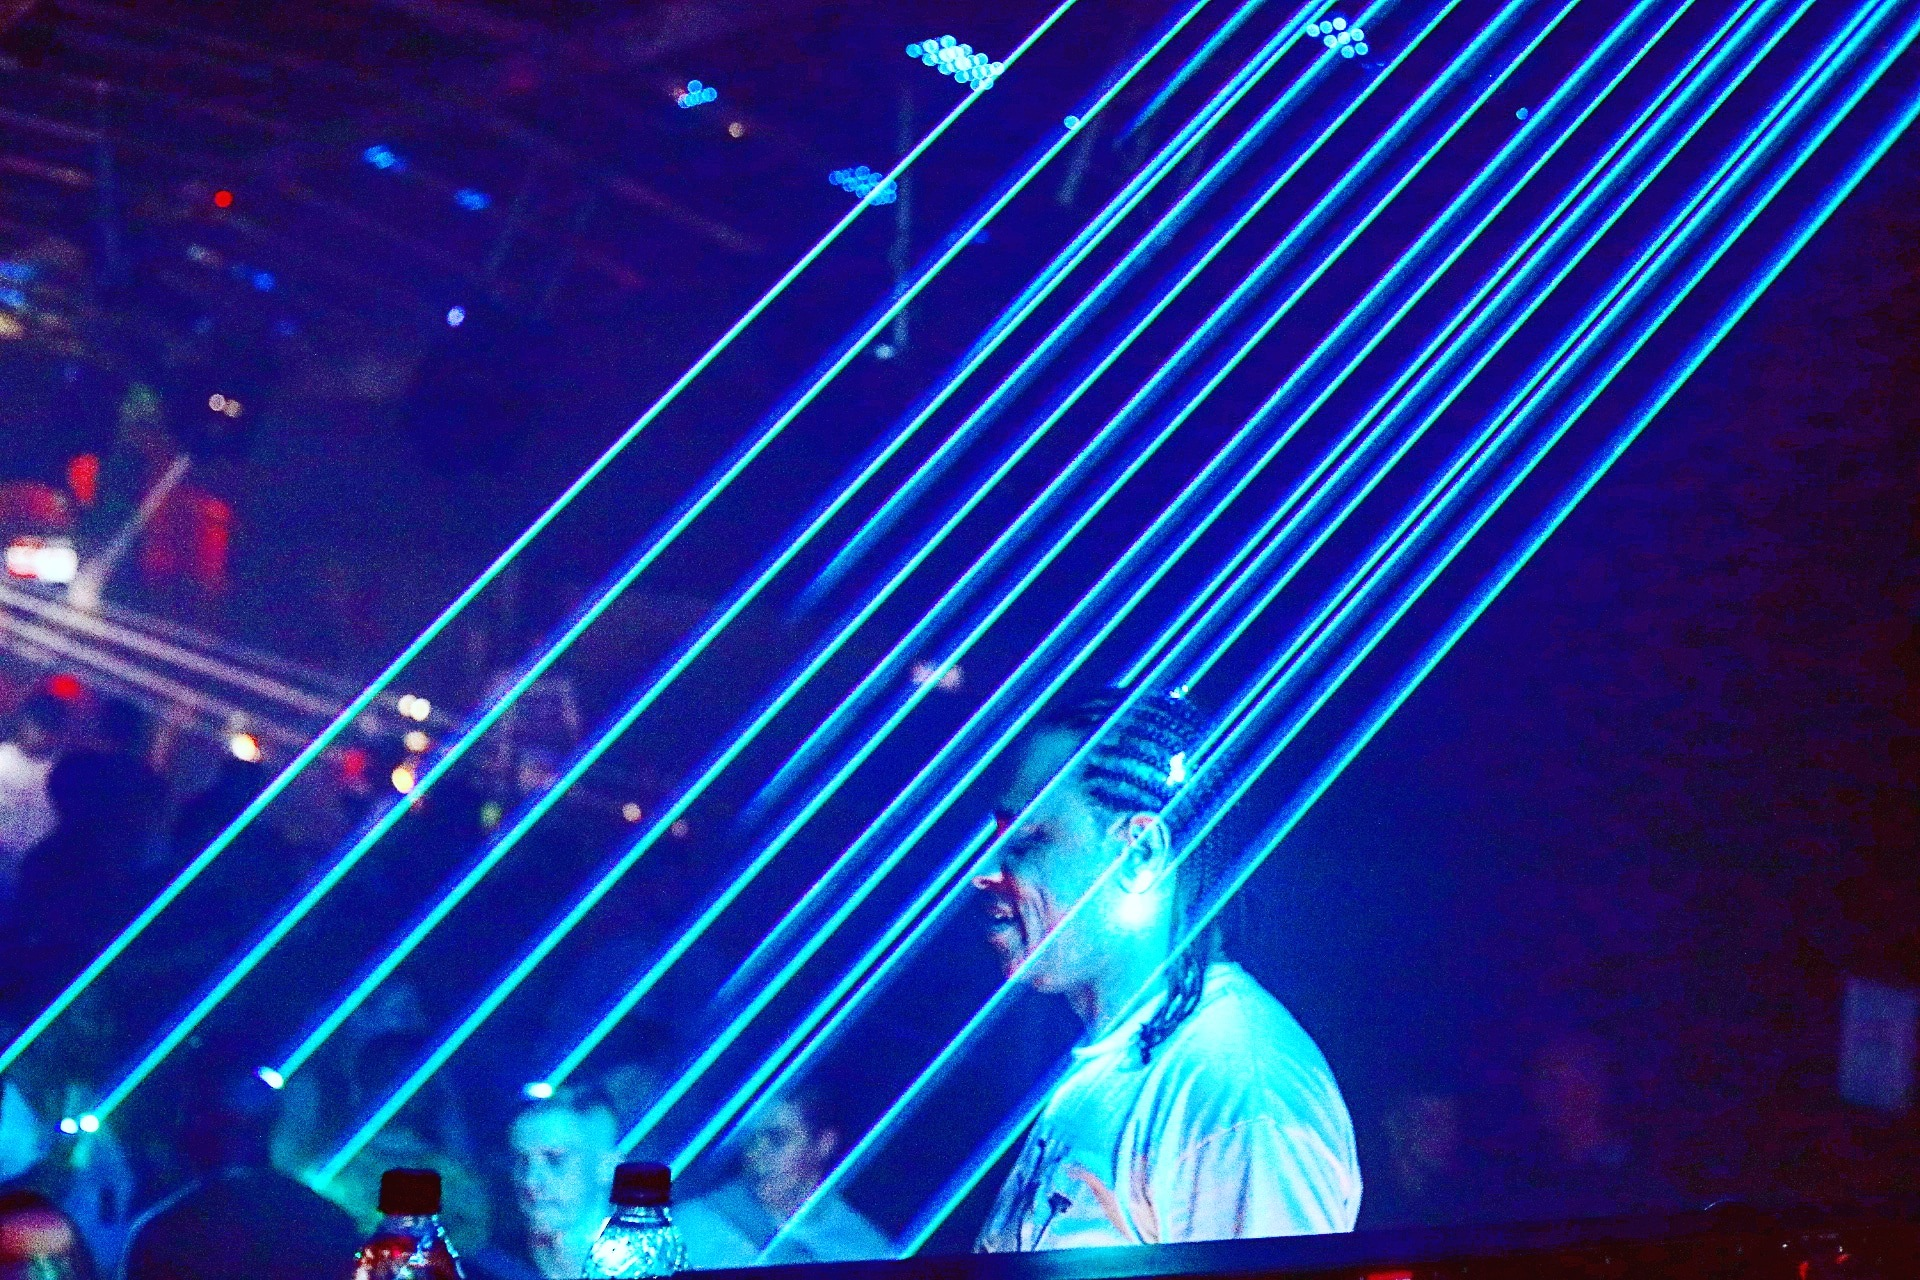 Raining with lazers by Ben Clements